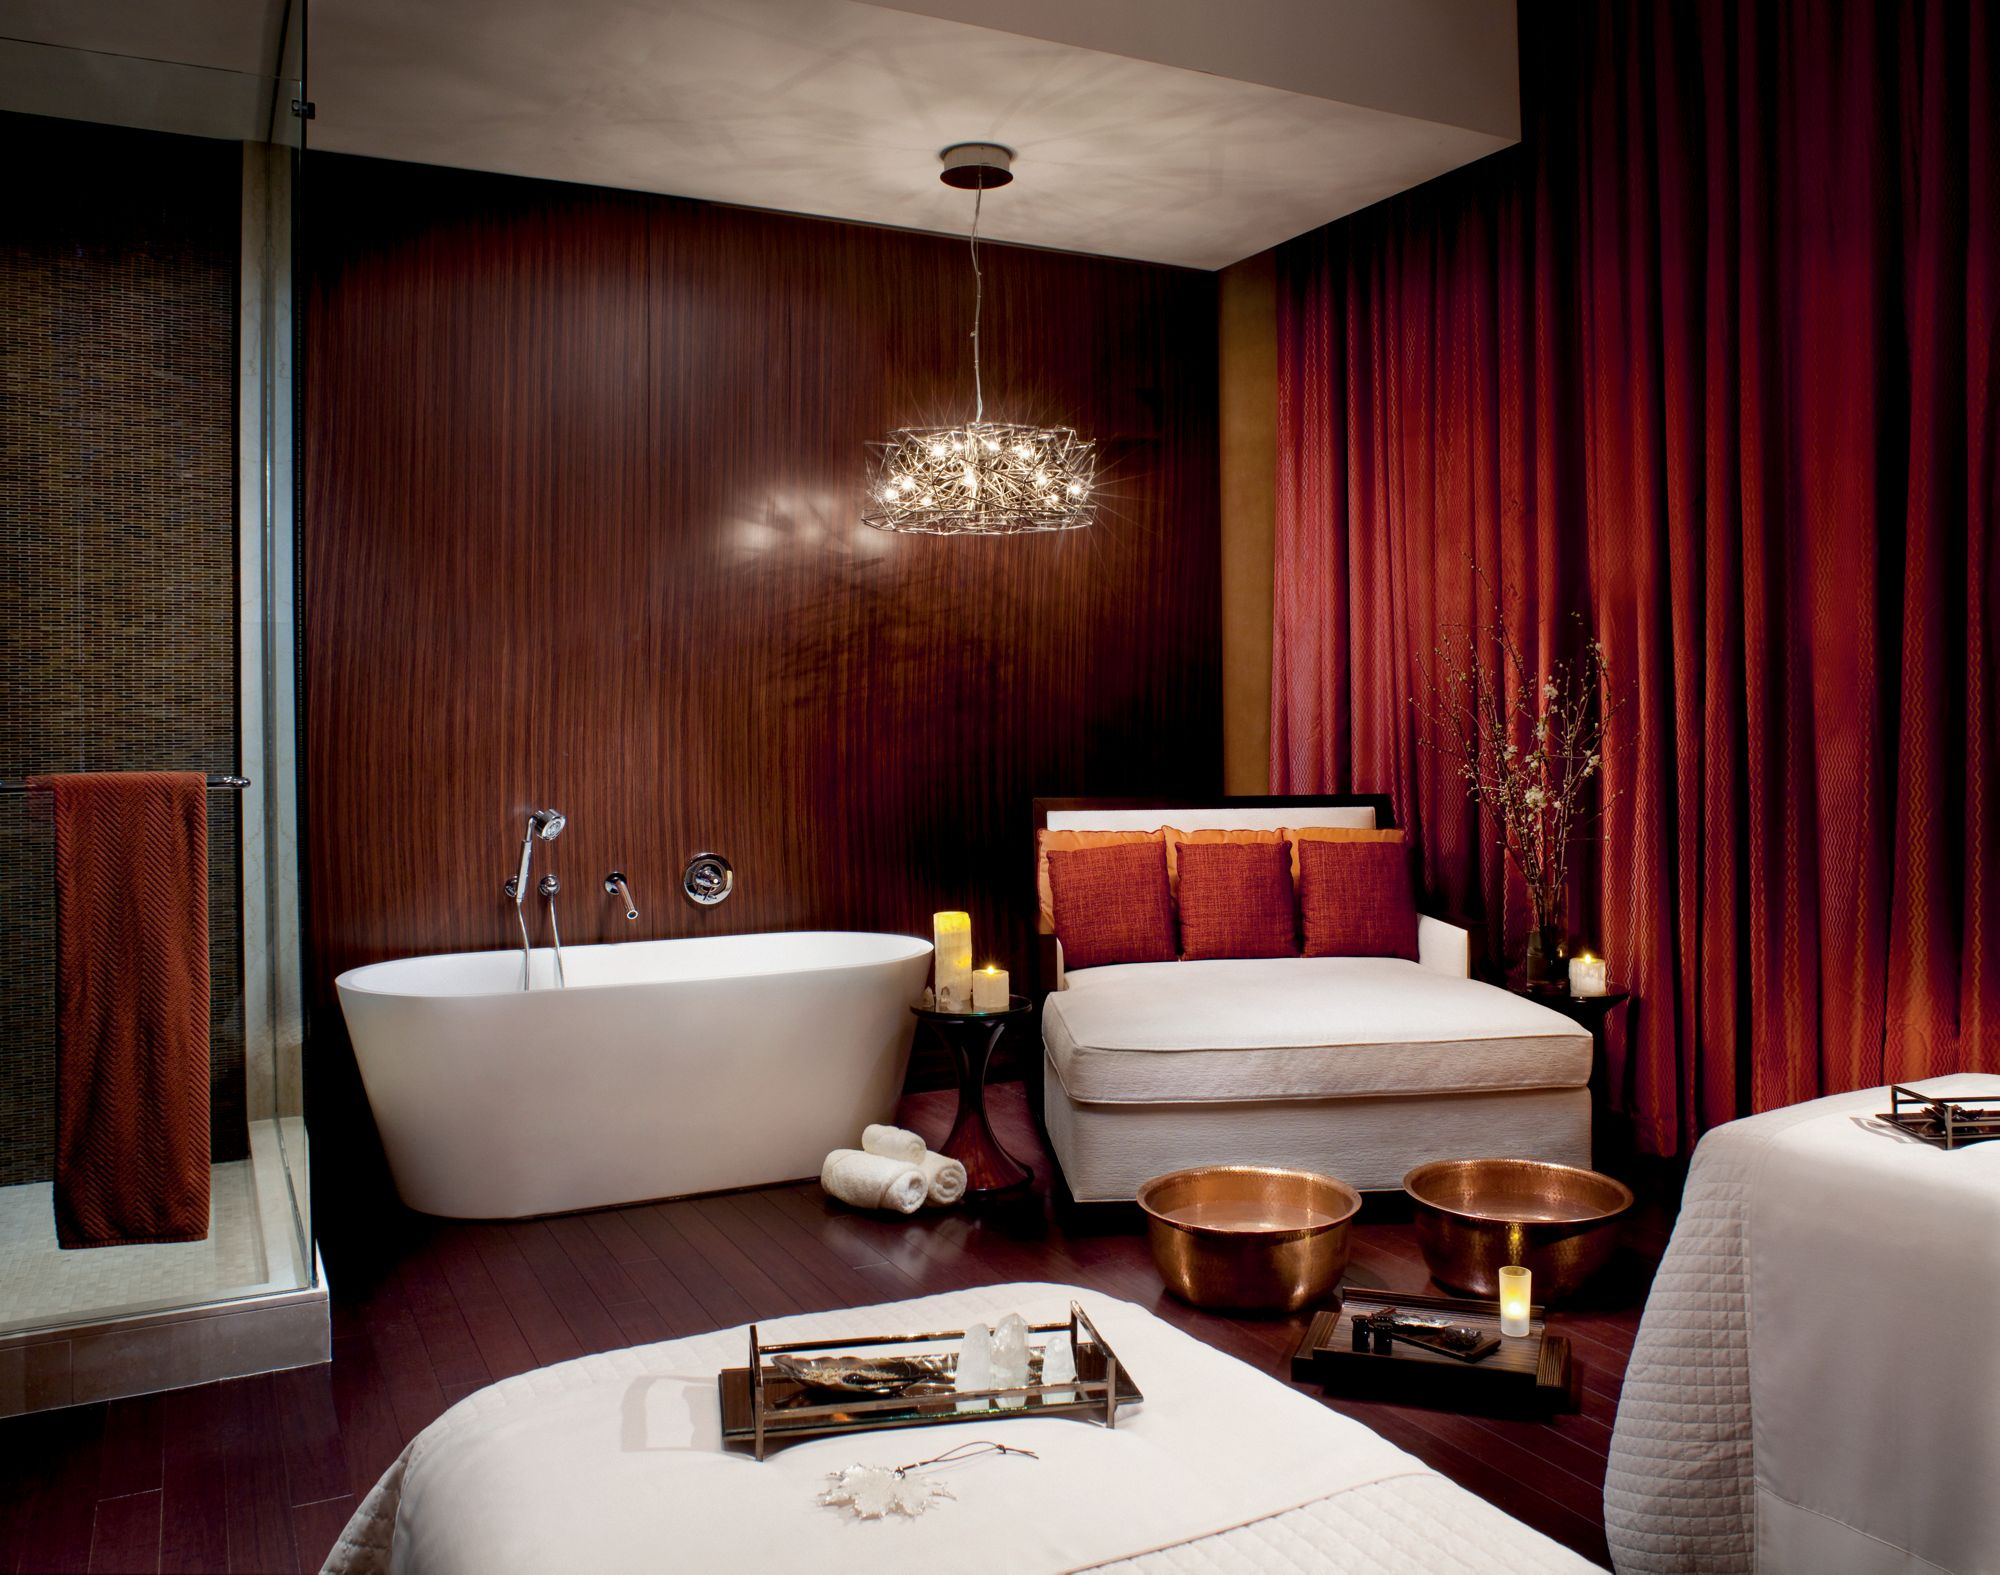 https://www.spafinder.com/Spa/56414-Spa-My-Blend-by-Clarins-at-The-Ritz-Carlton-Toronto